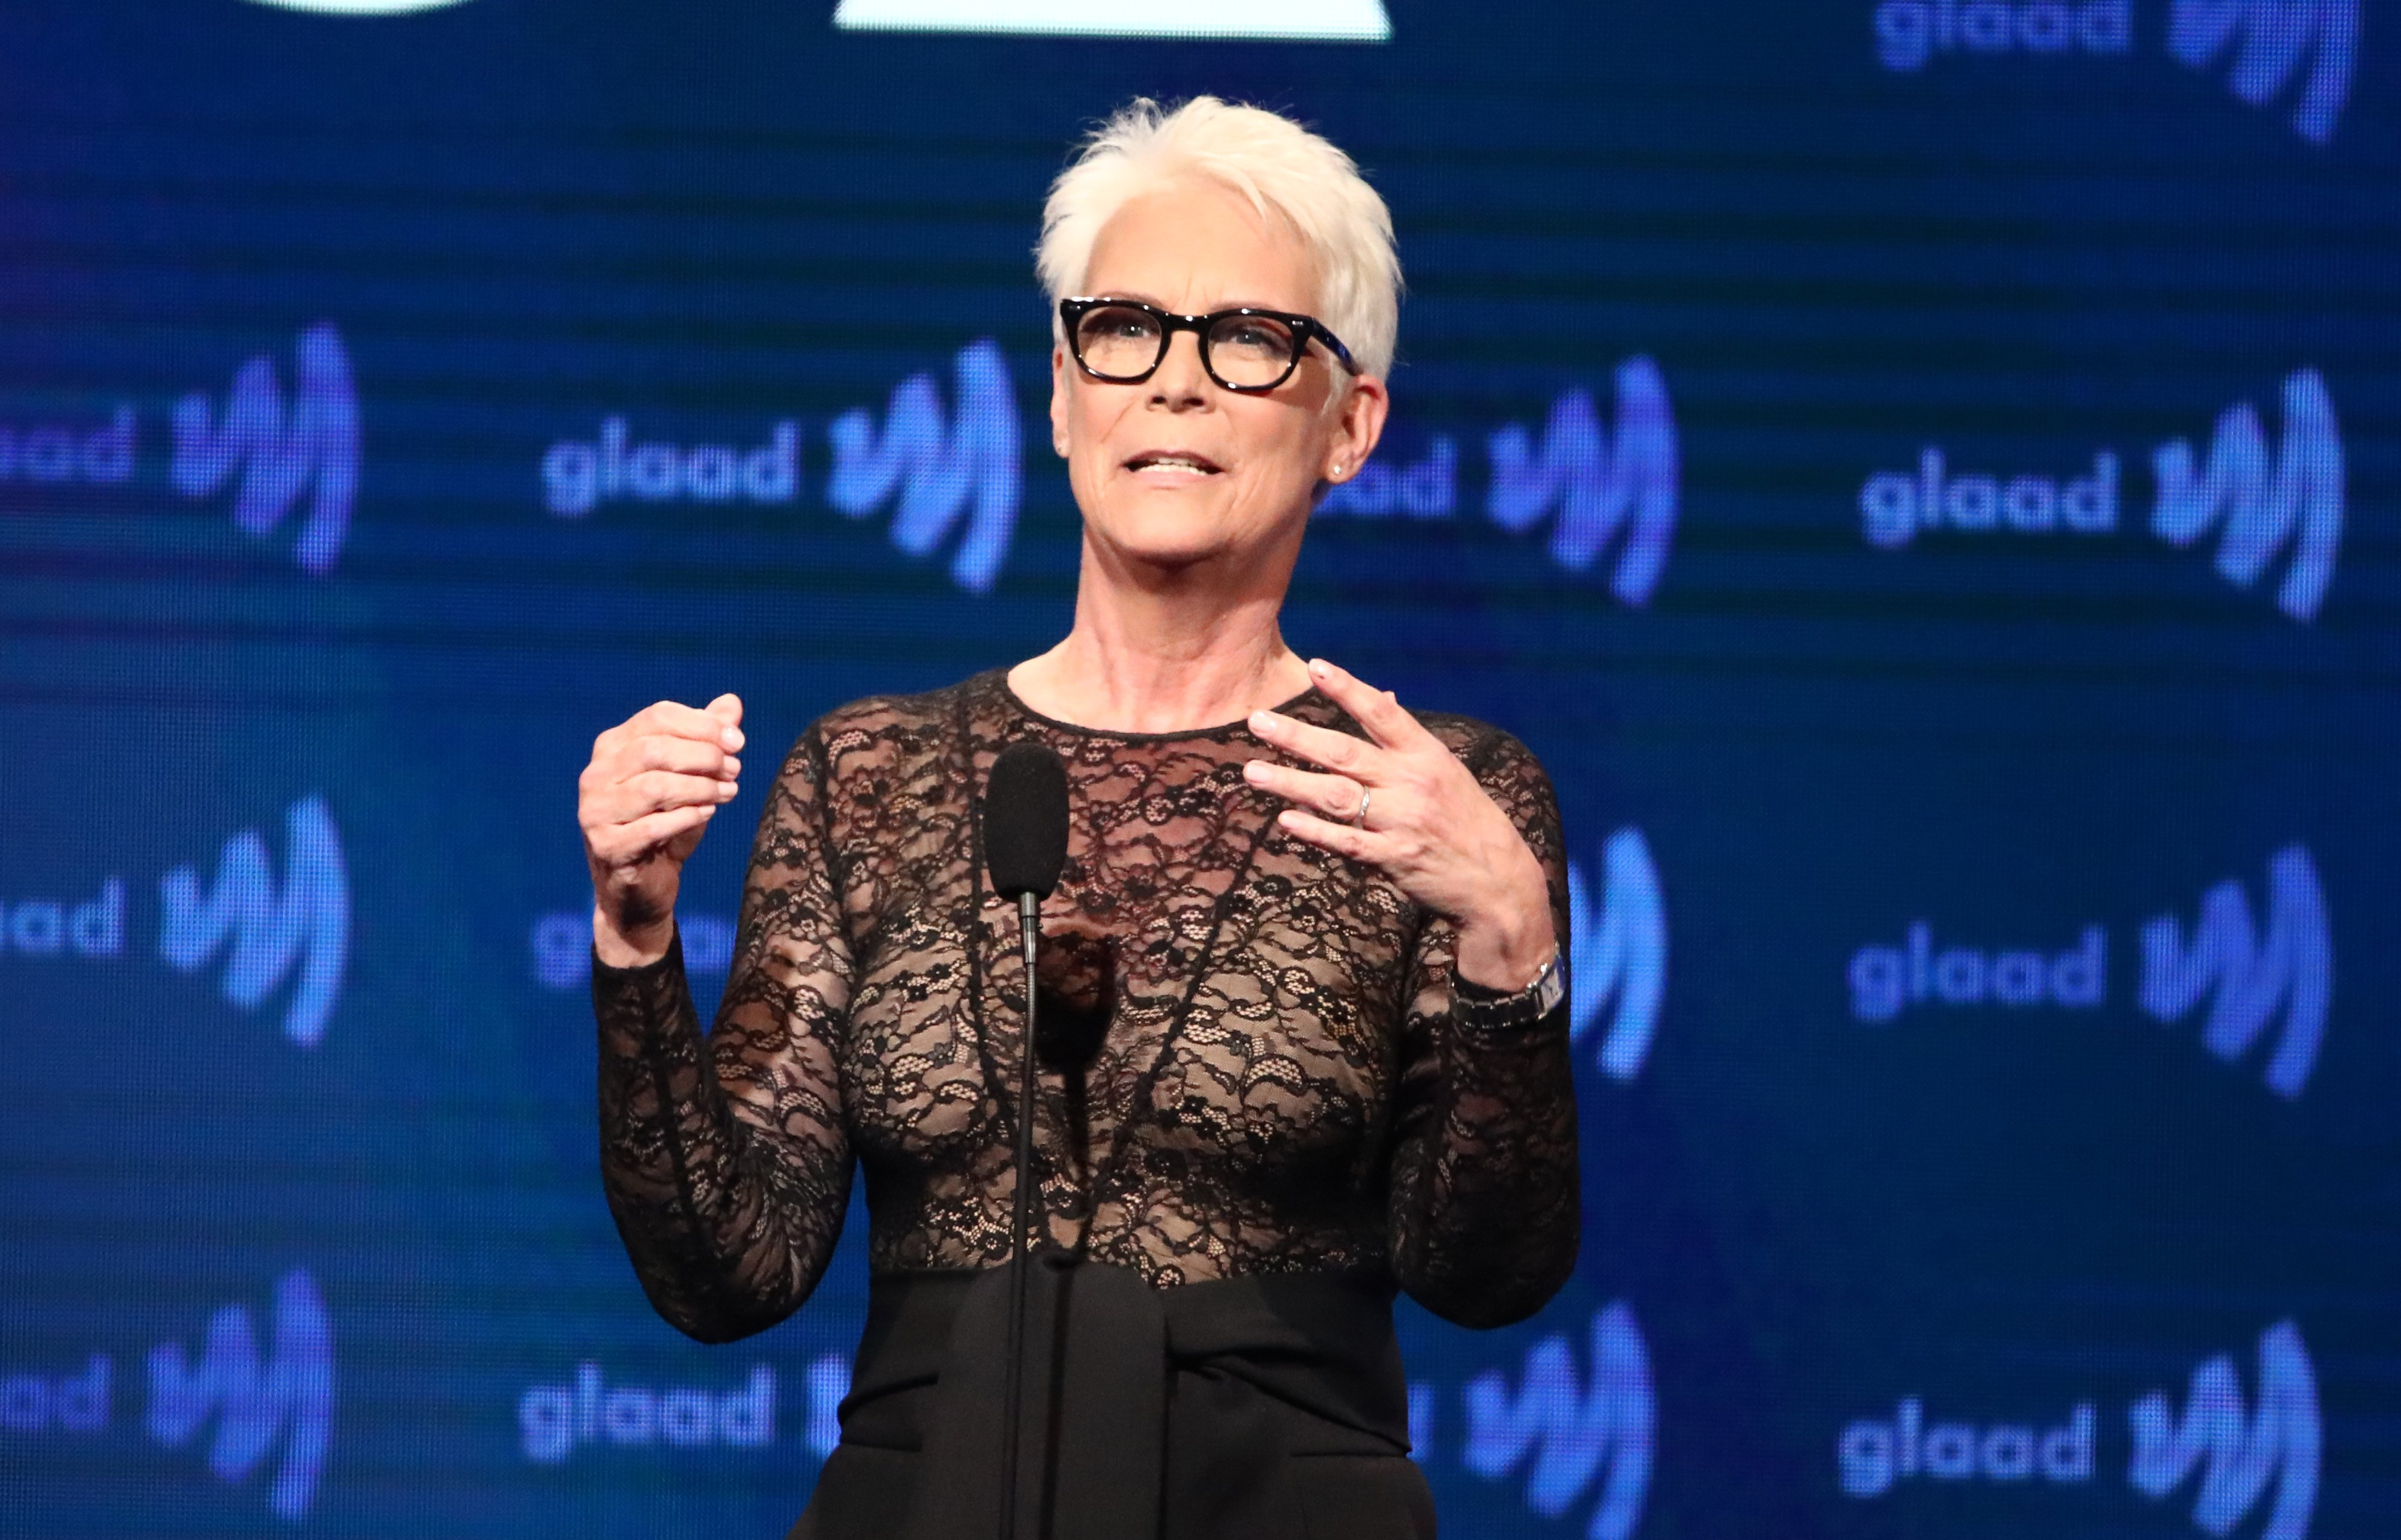 Jamie Lee Curtis speaks on stage during the 30th Annual GLAAD Media Awards in Los Angeles at the Beverly Hilton Hotel on March 28, 2019. | usage worldwide  Photo: Getty Images